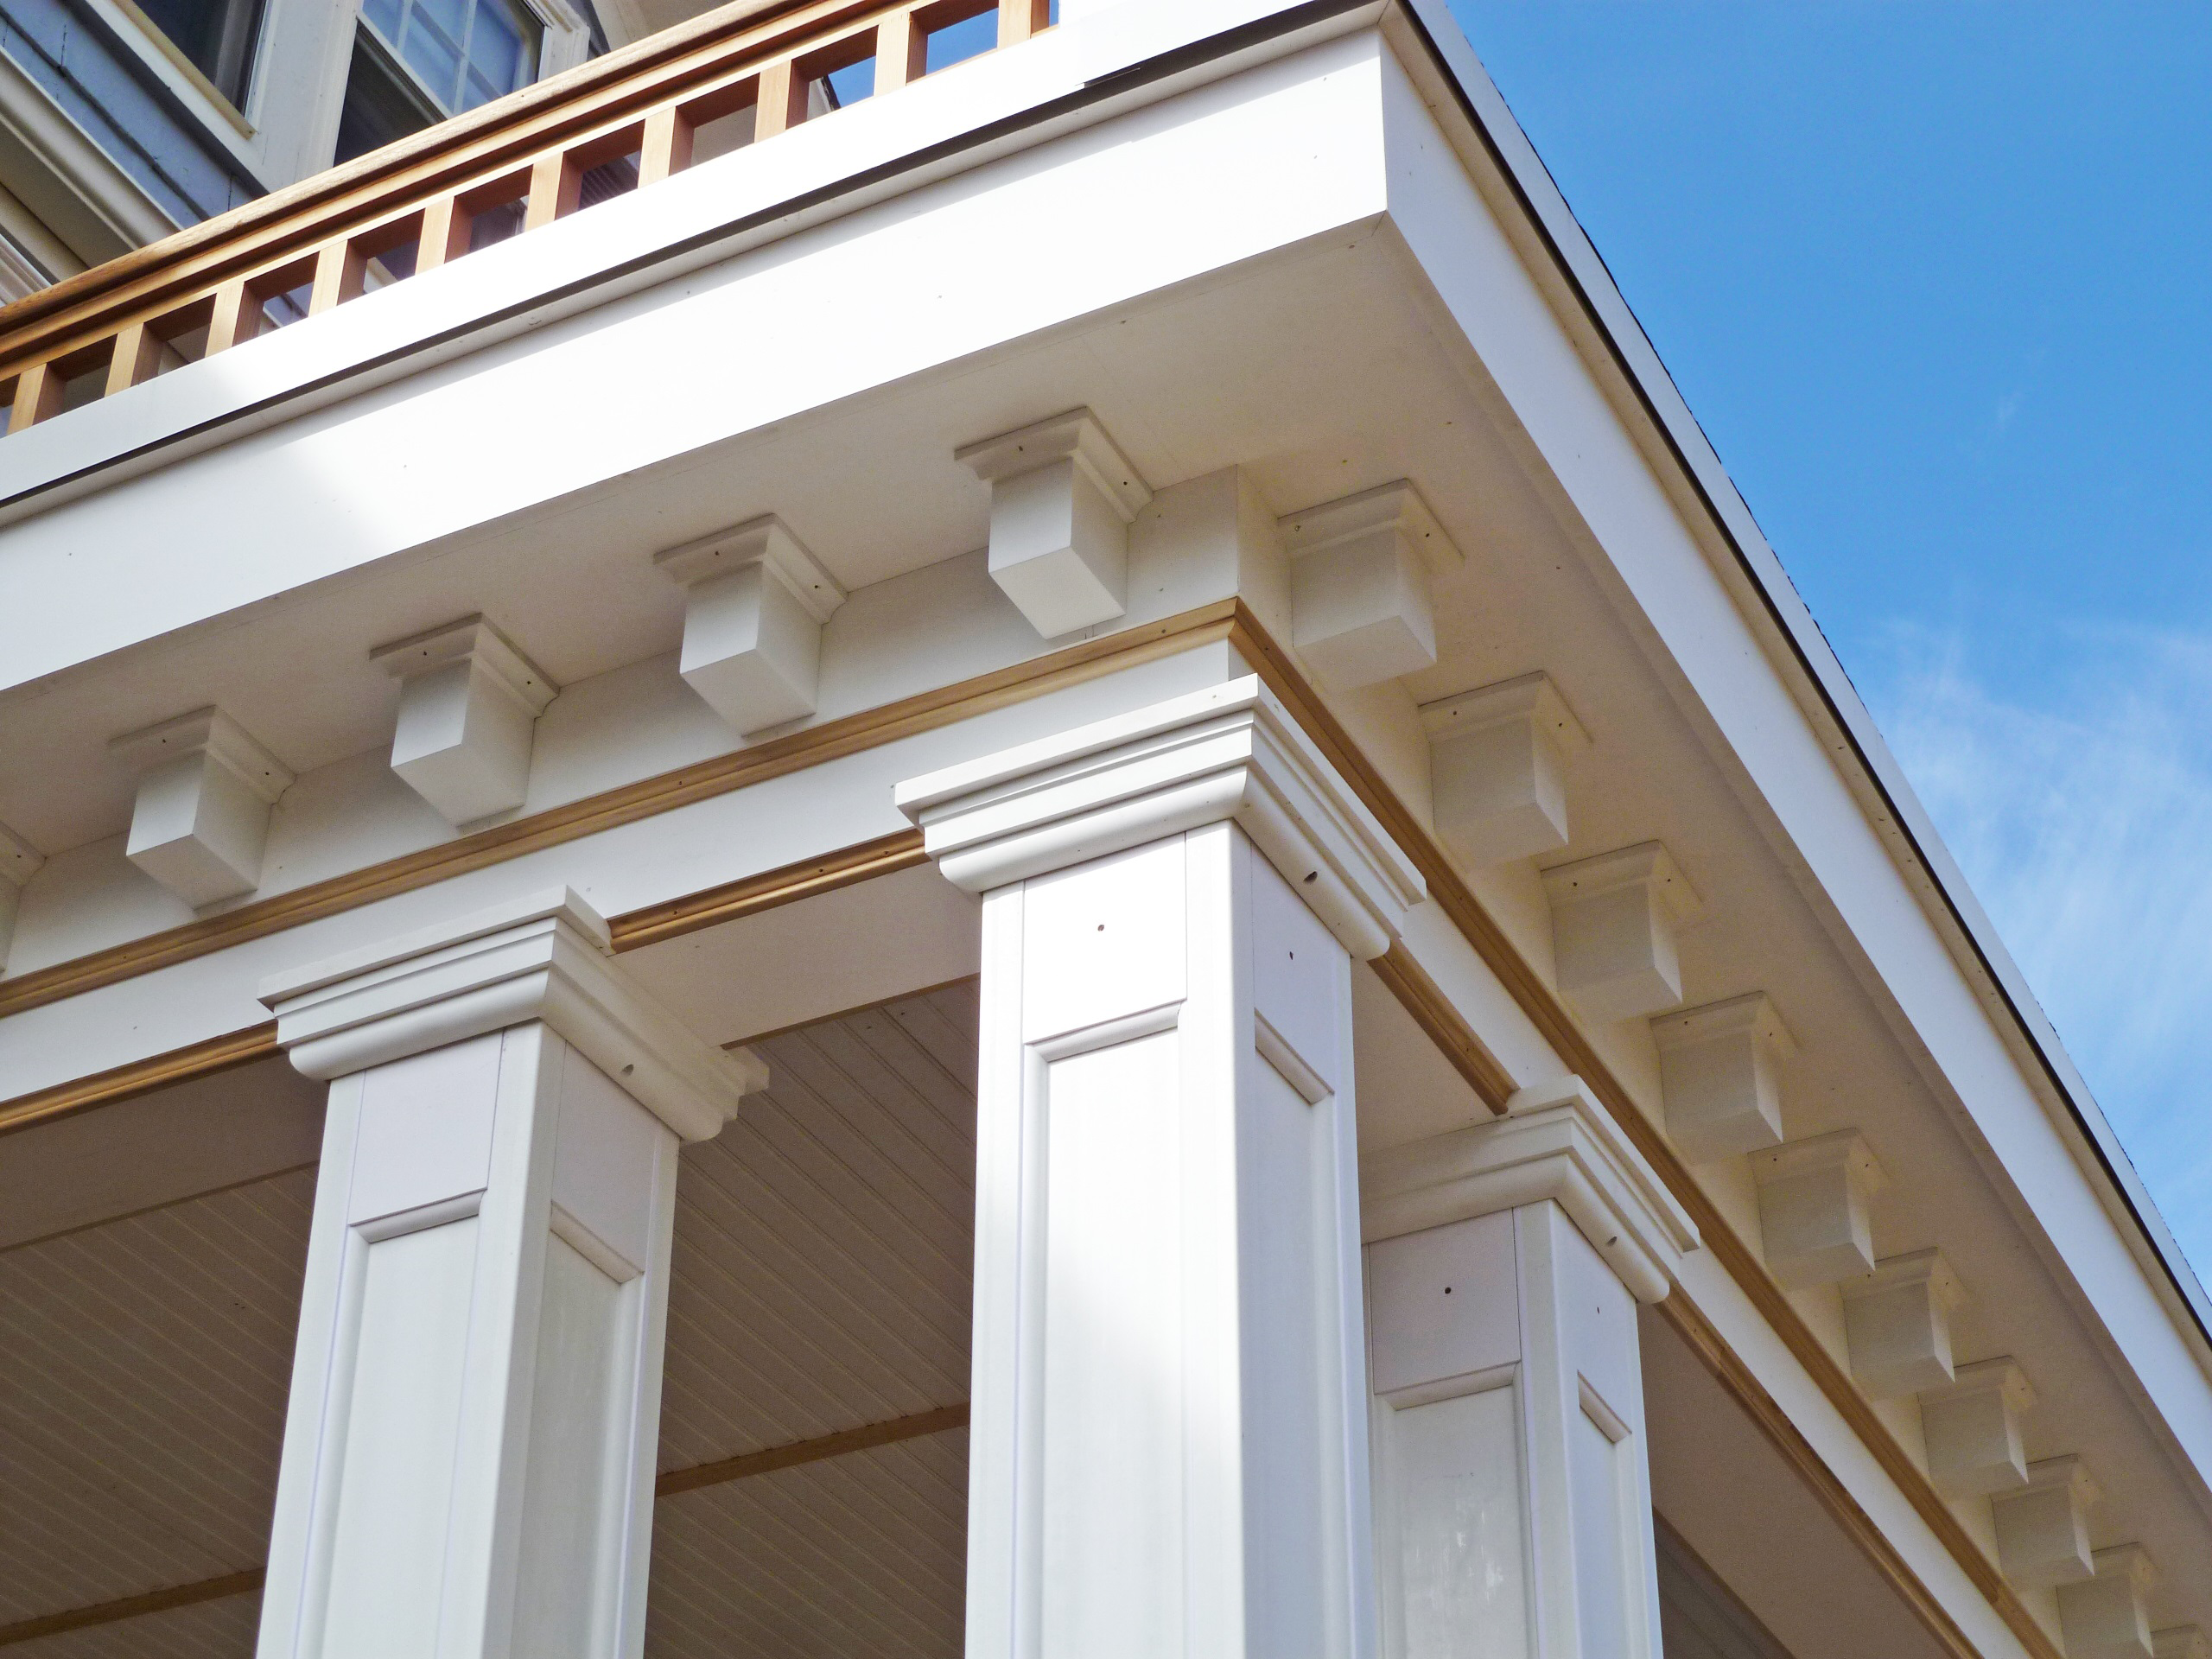 Square Column Trim : Porches archadeck outdoor living